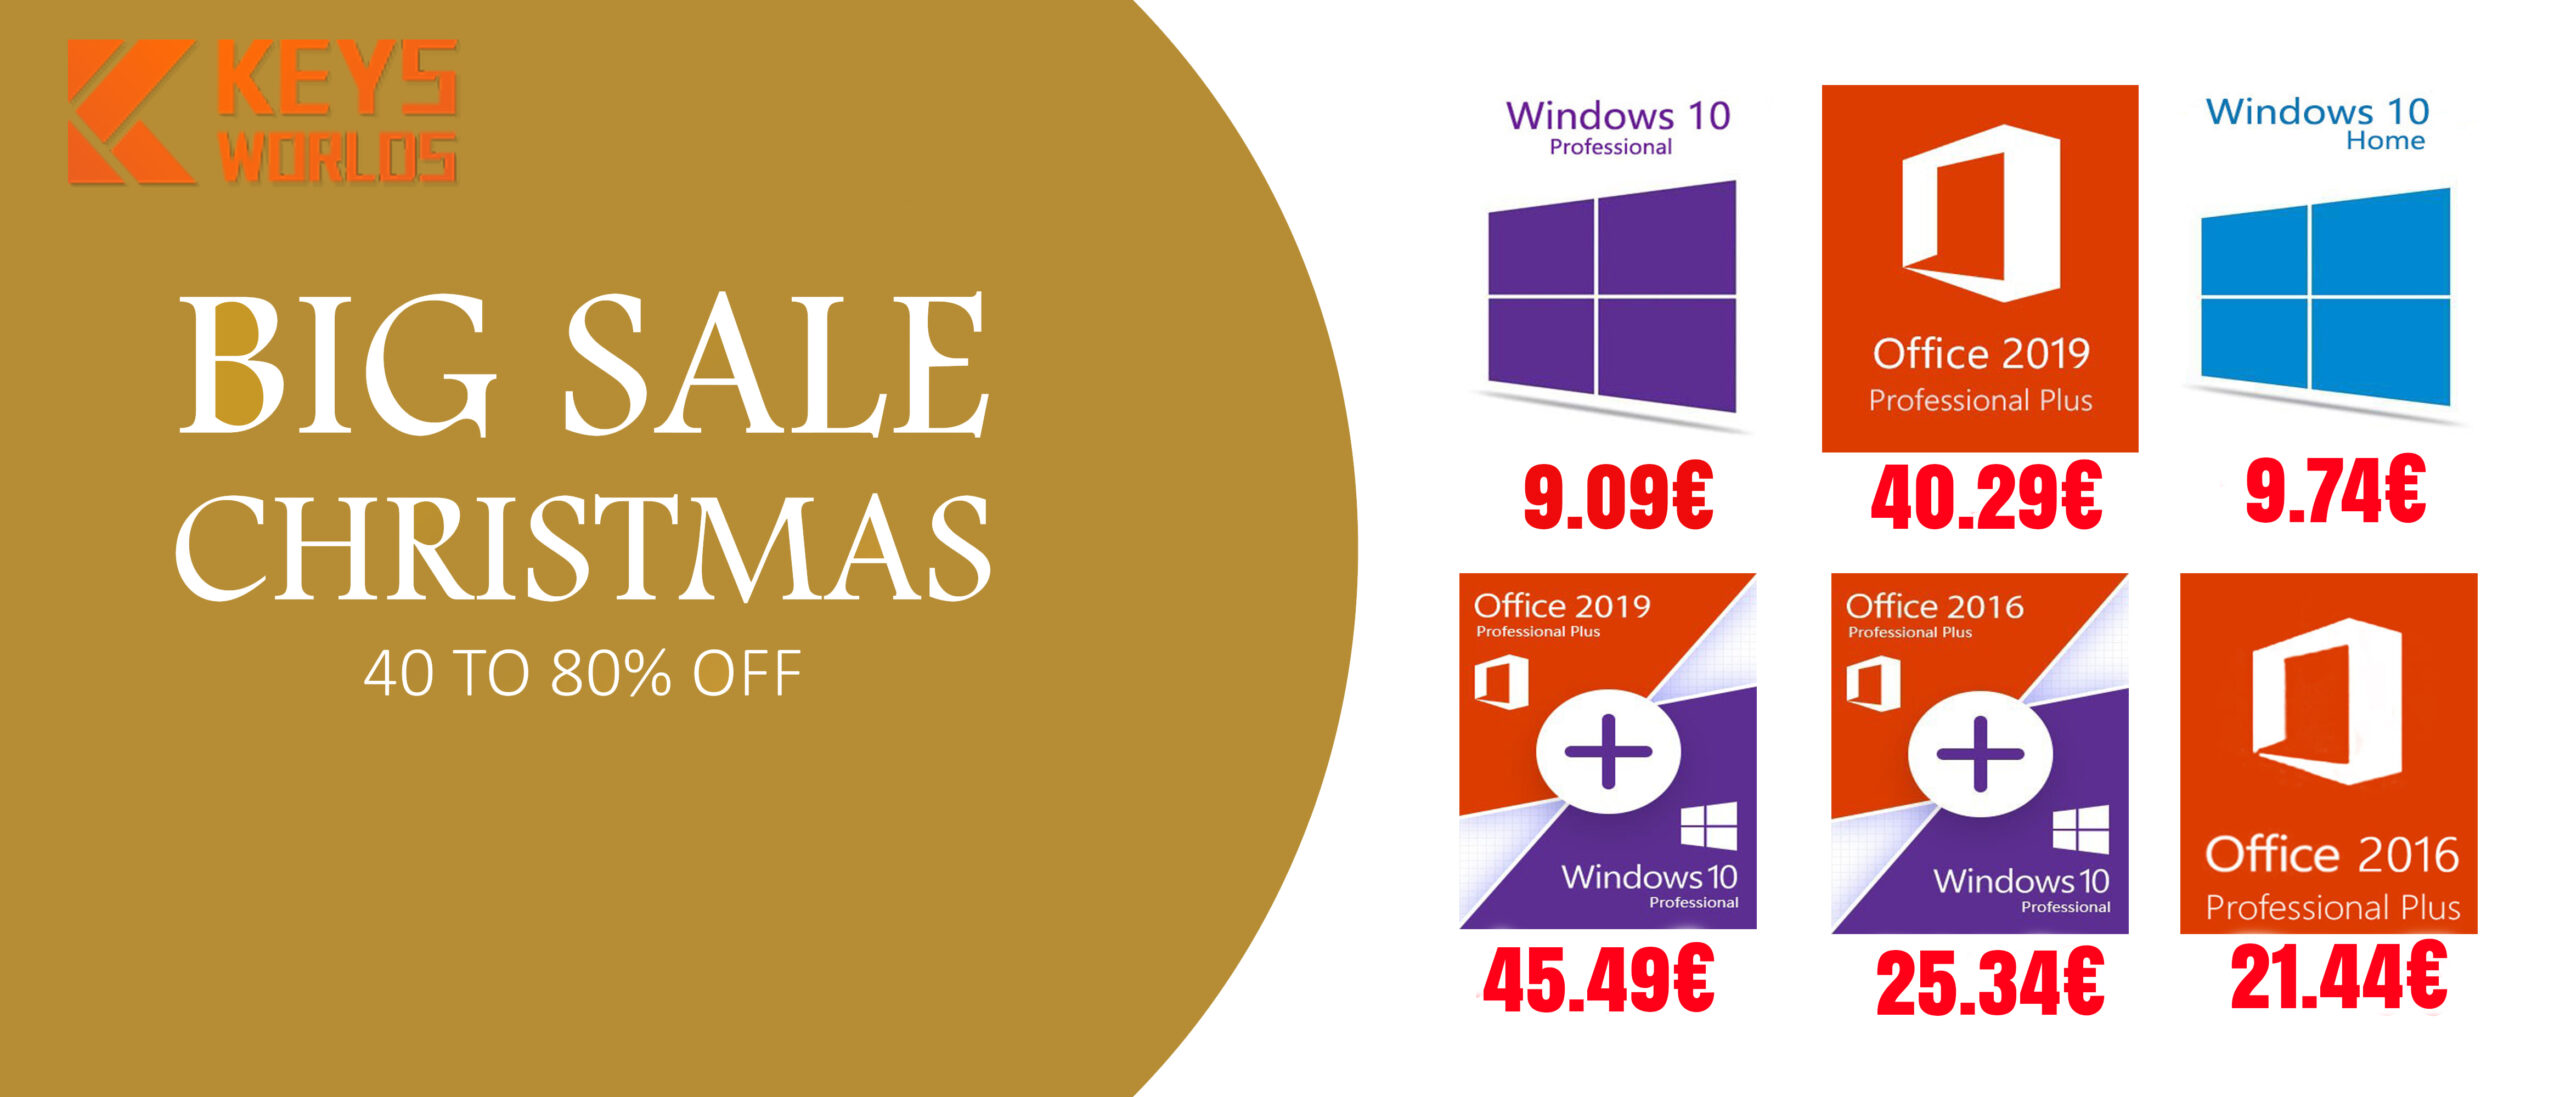 Promotion de Noël pour les licences Windows, Office 2016 Pro et Office 2019